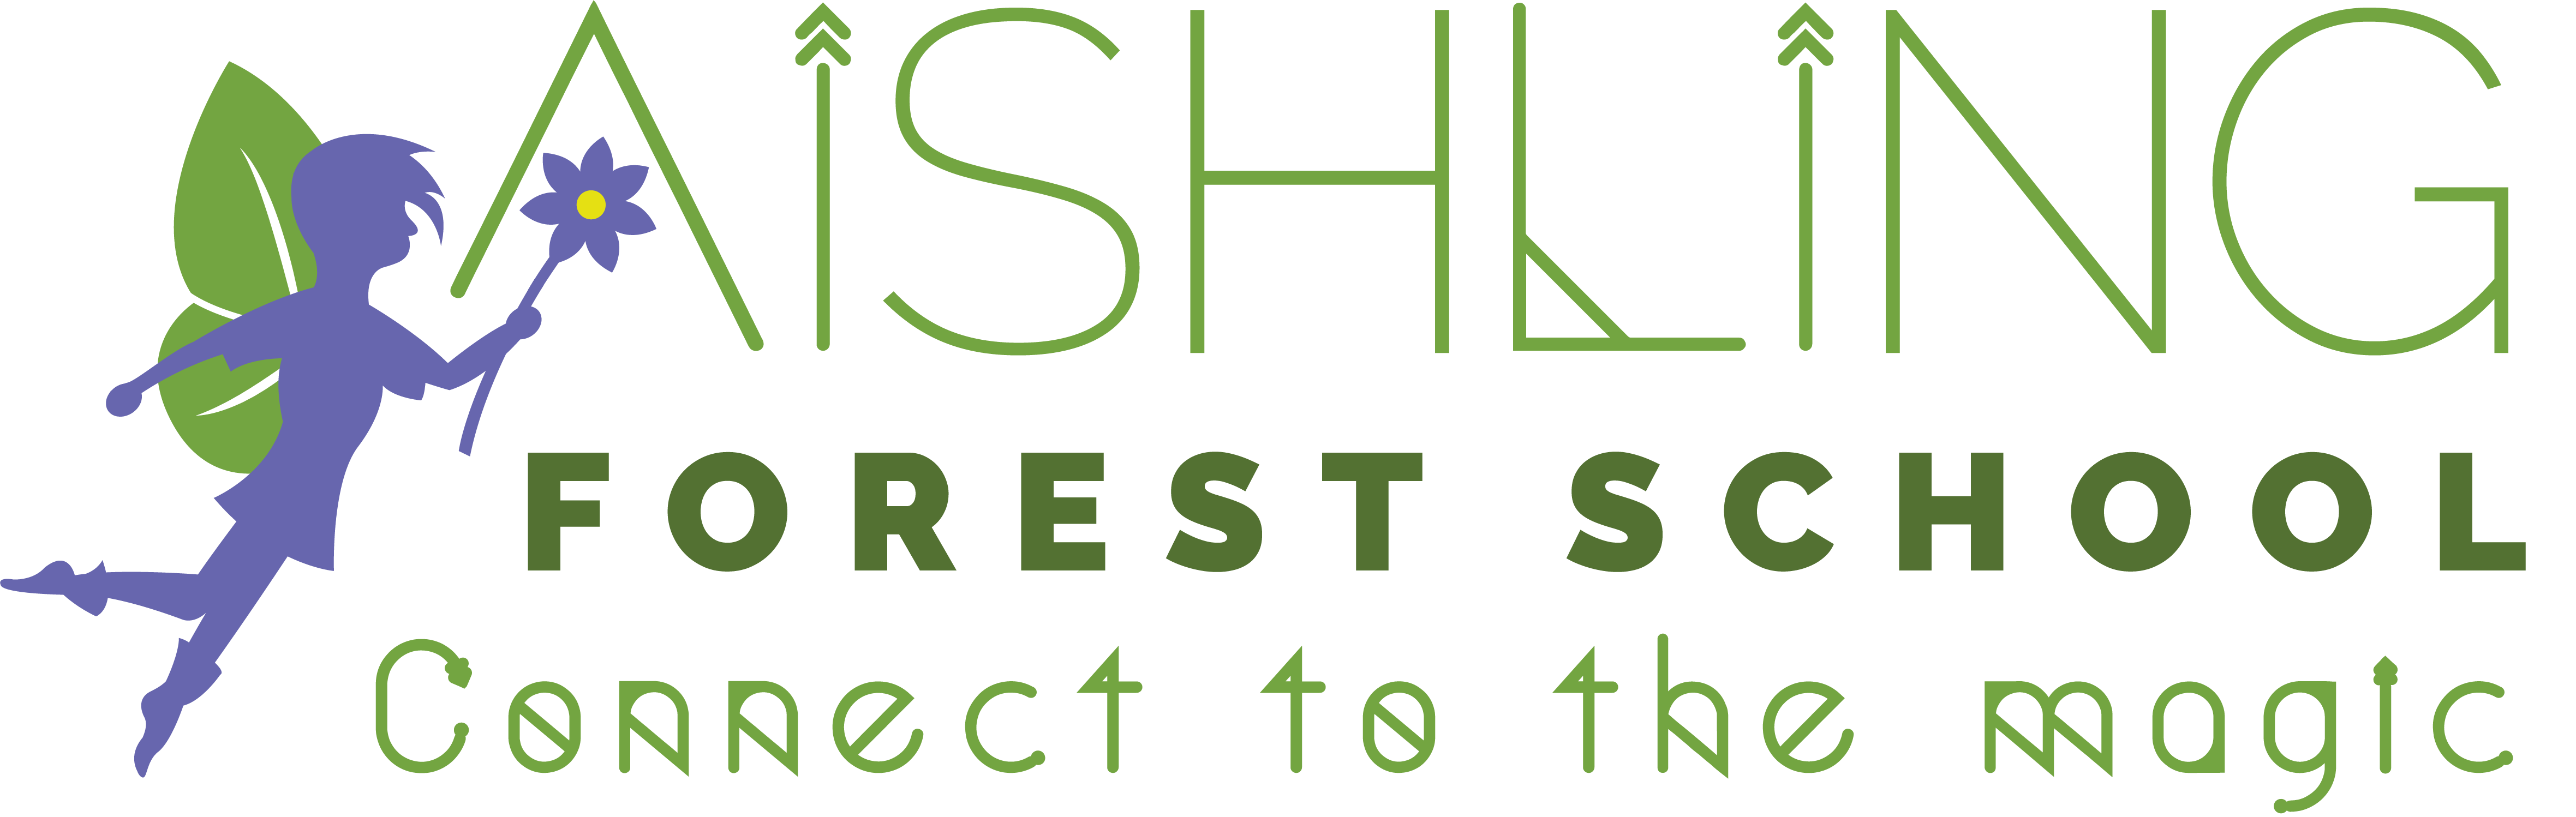 Aishling Forest School